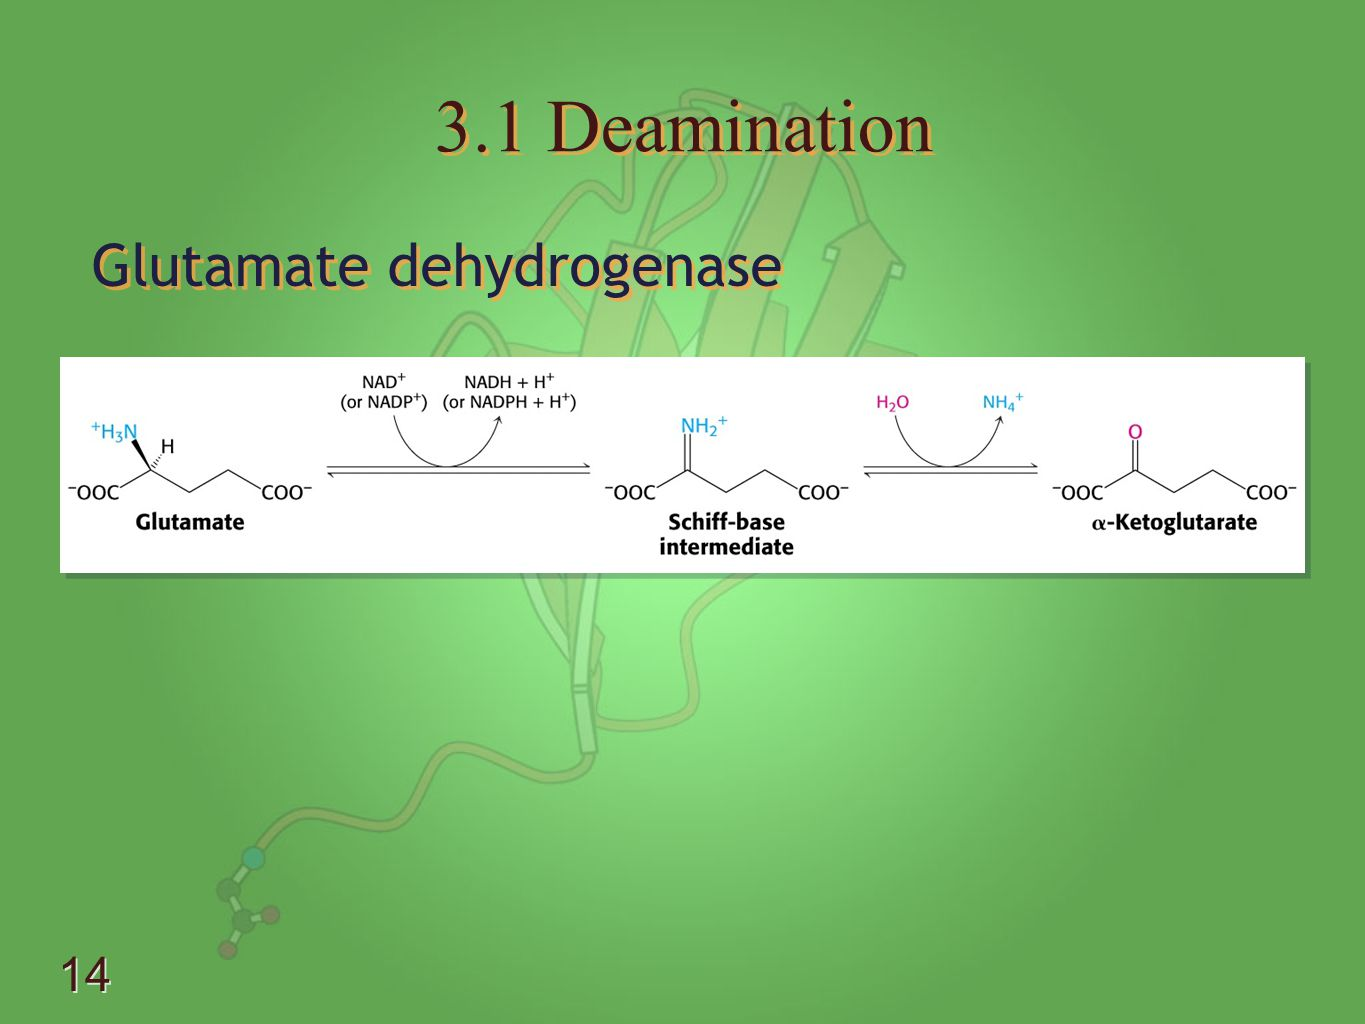 3.1 Deamination Glutamate dehydrogenase - Uses either NAD or NADP